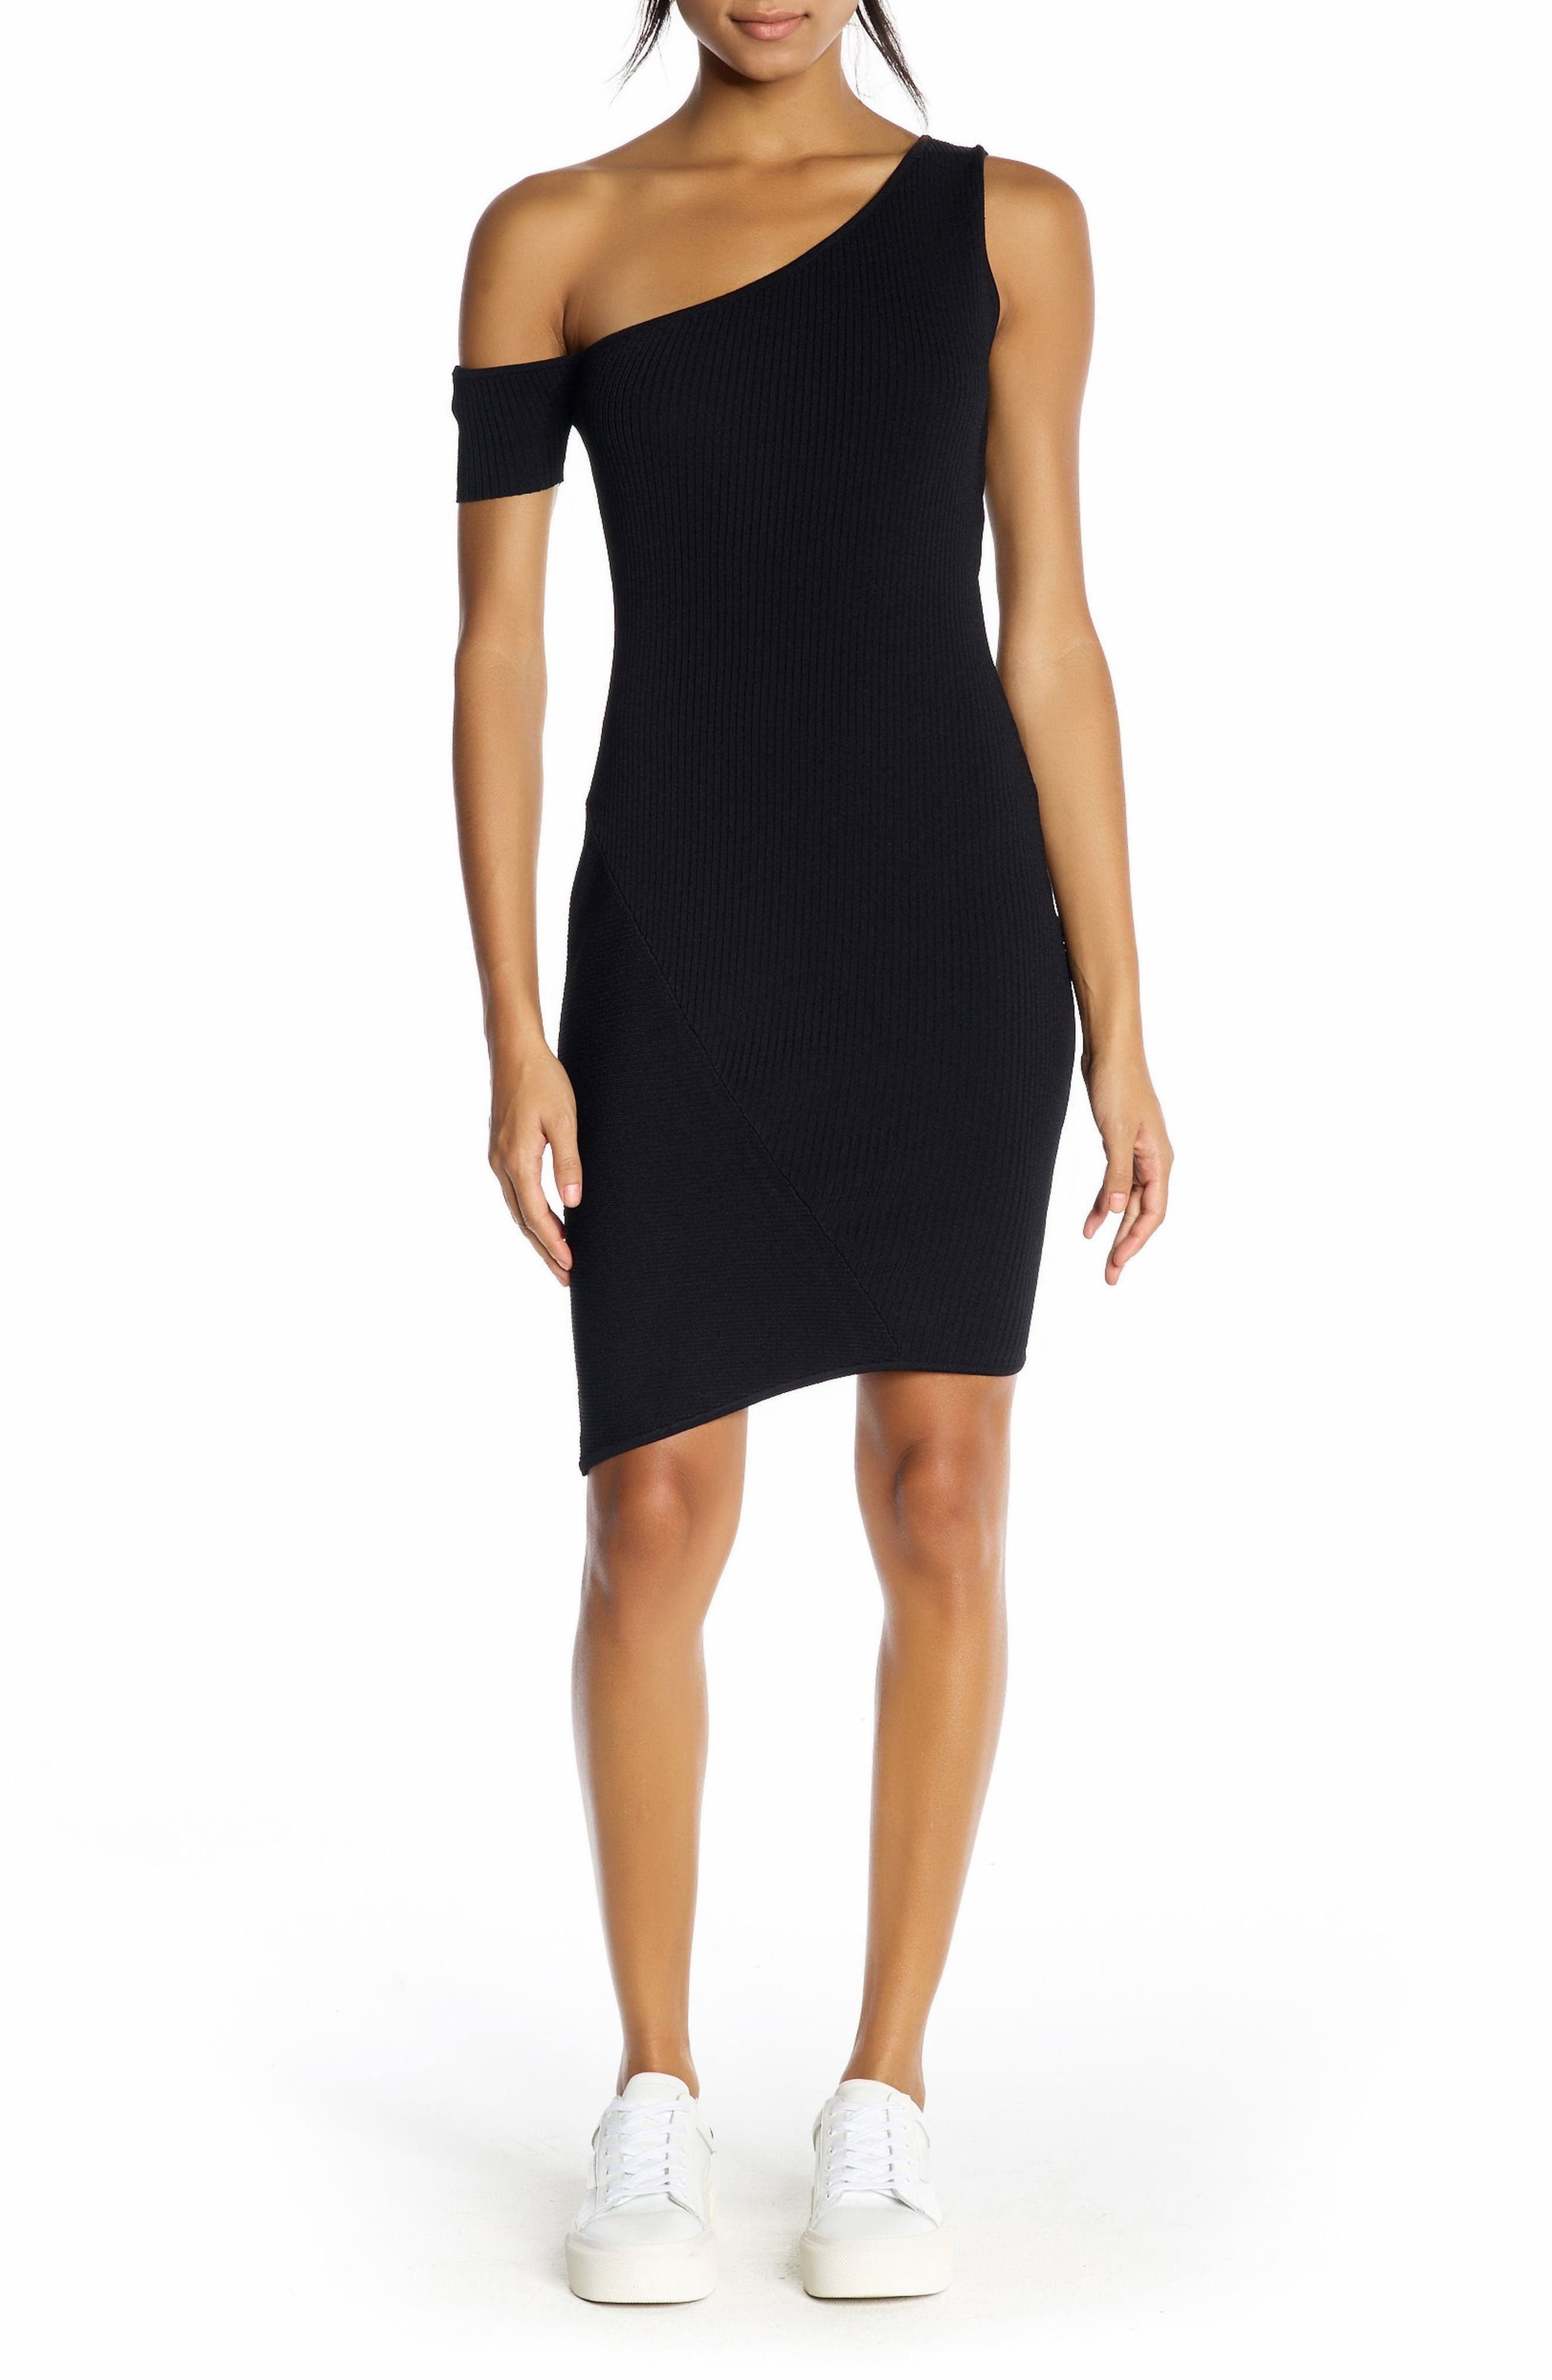 Main Image - KENDALL + KYLIE One-Shoulder Body-Con Dress